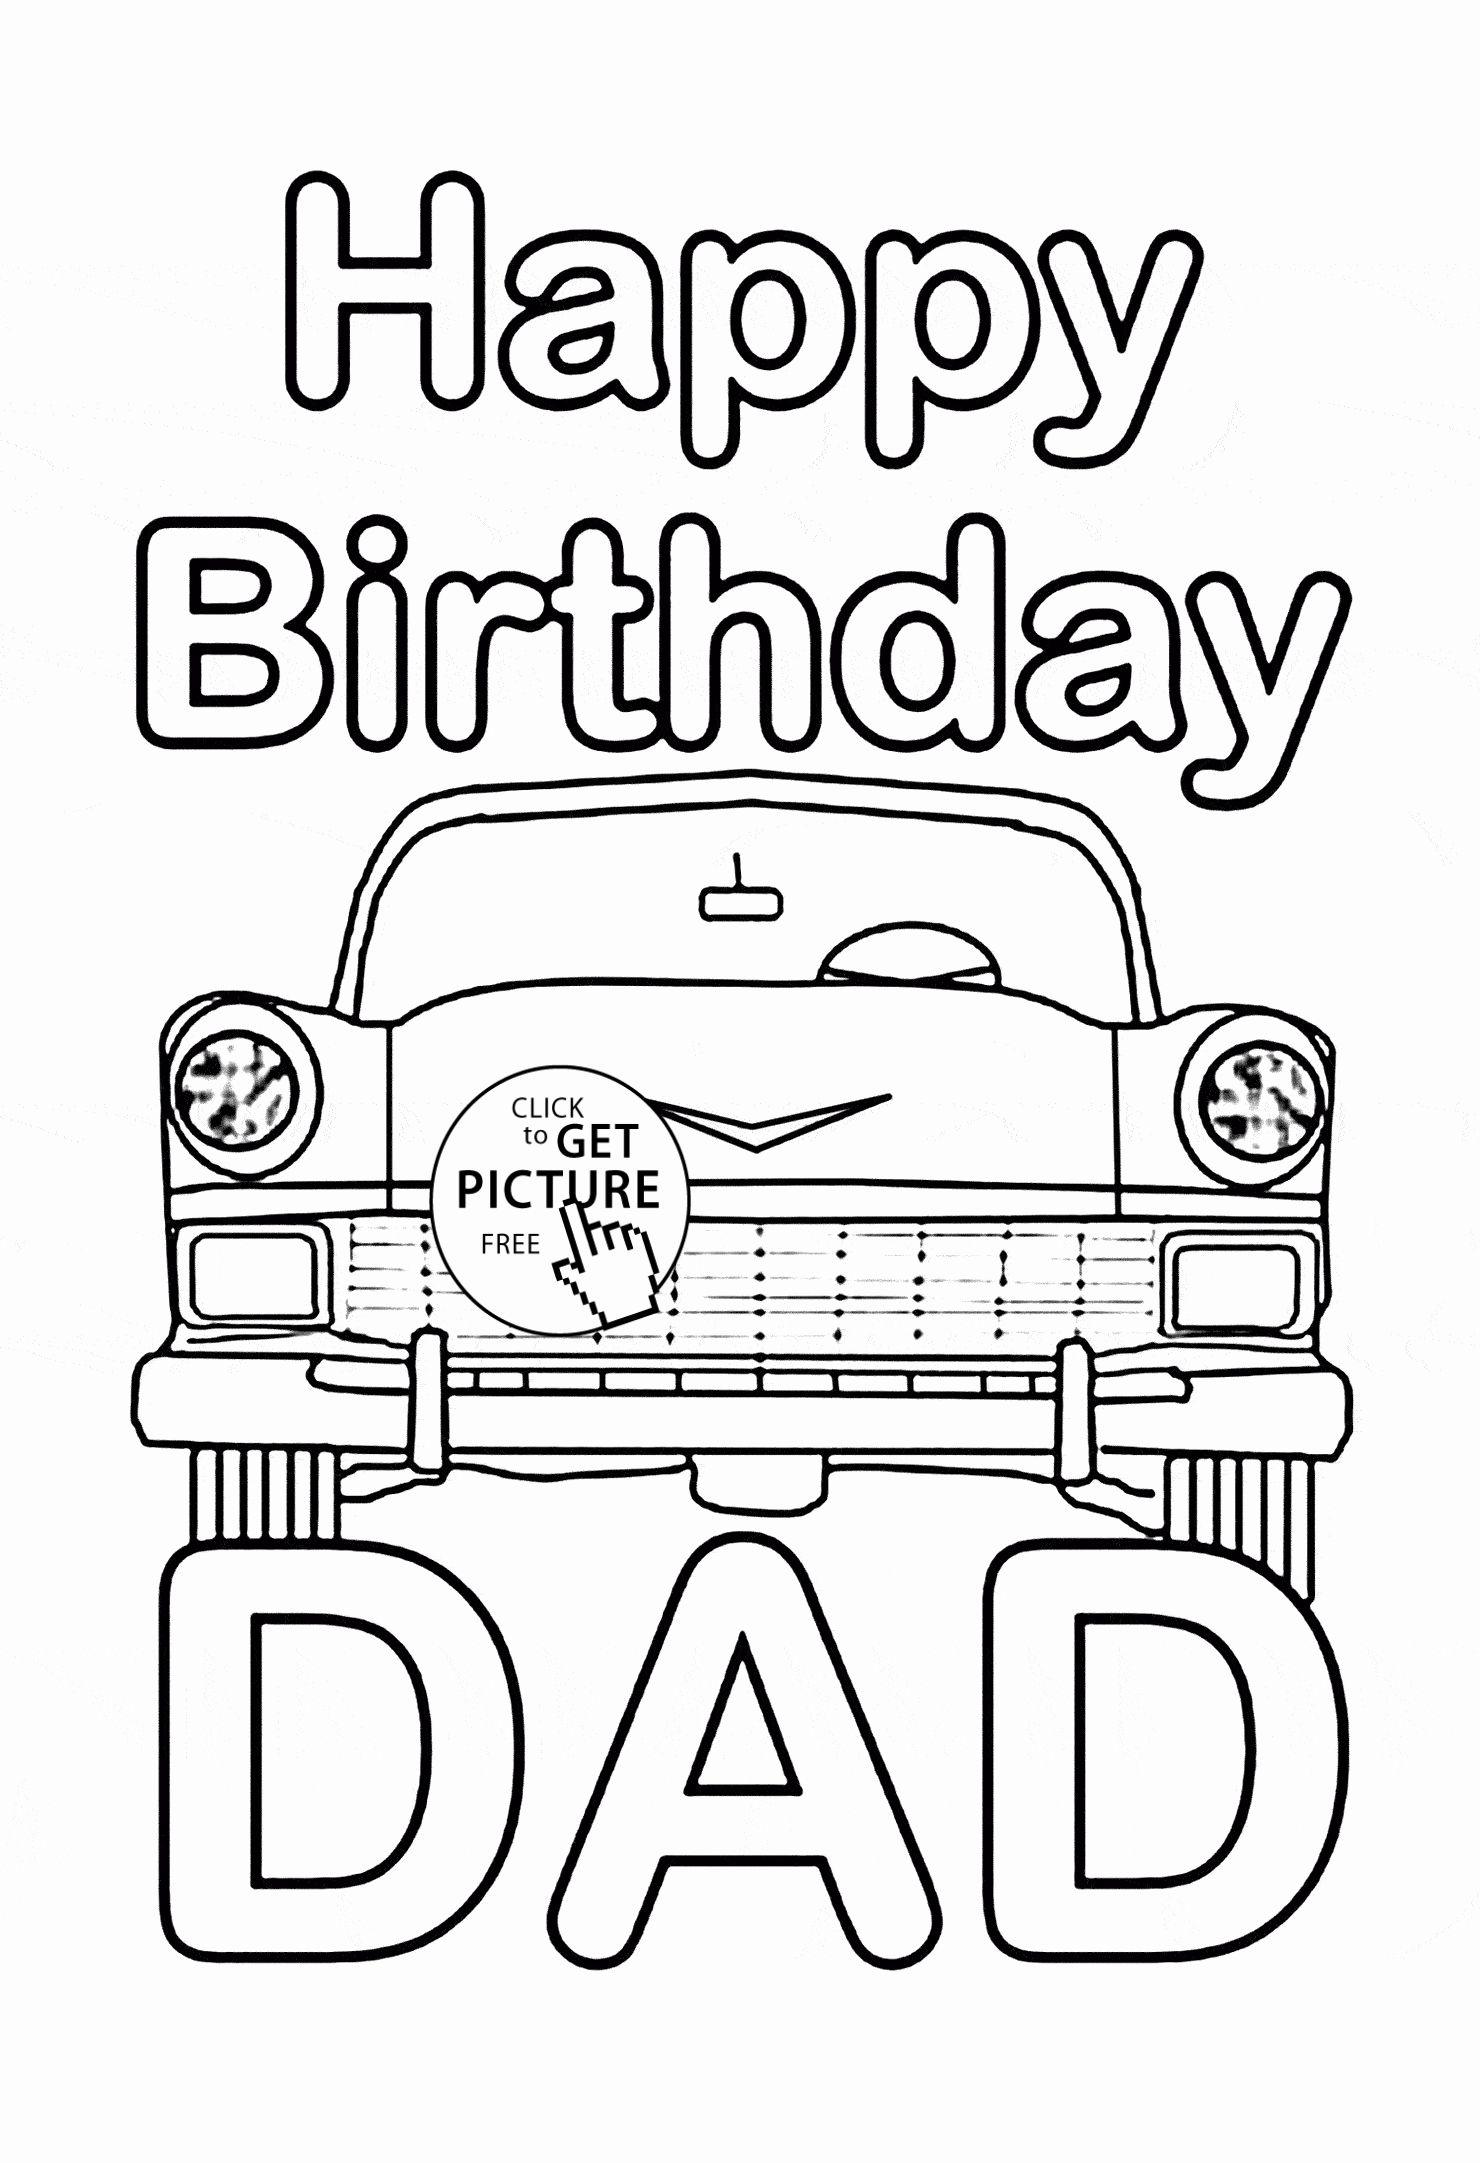 Happy Birthday Daddy Coloring Page Inspirational Happy Birthday Dad Coloring Page Fo Happy Birthday Coloring Pages Coloring Birthday Cards Happy Birthday Daddy